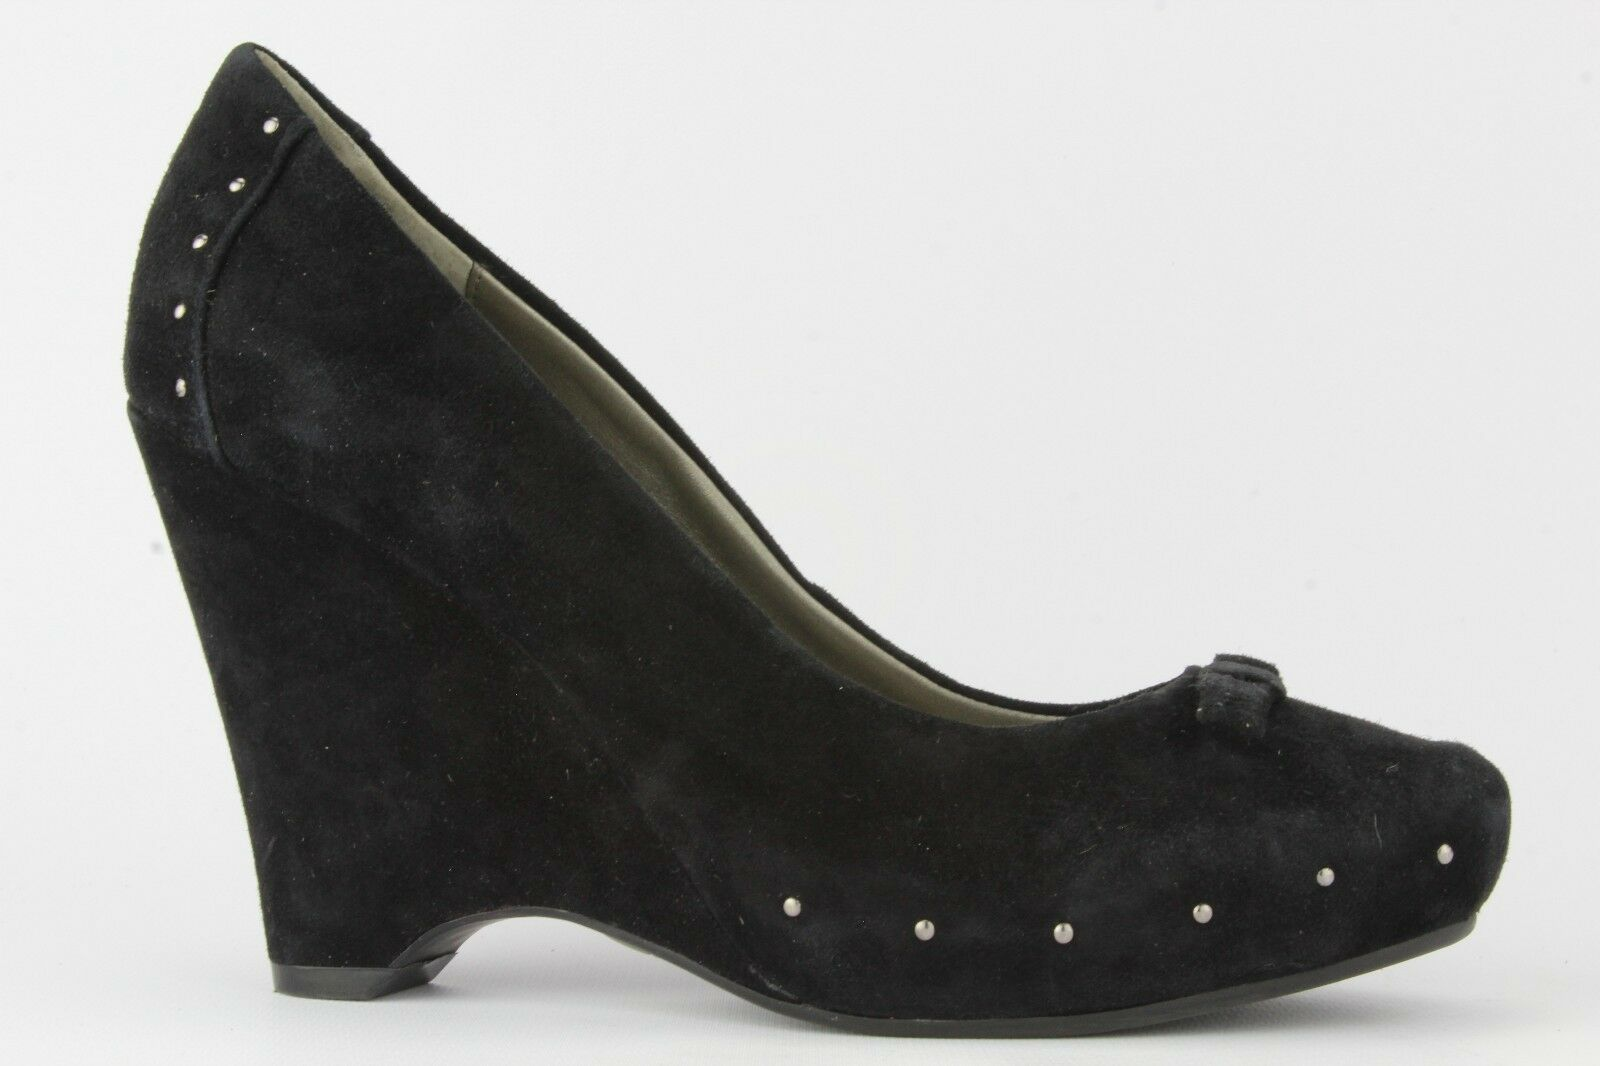 Me Too Women's Black Suede Wedge With Stud Detail Size 7M